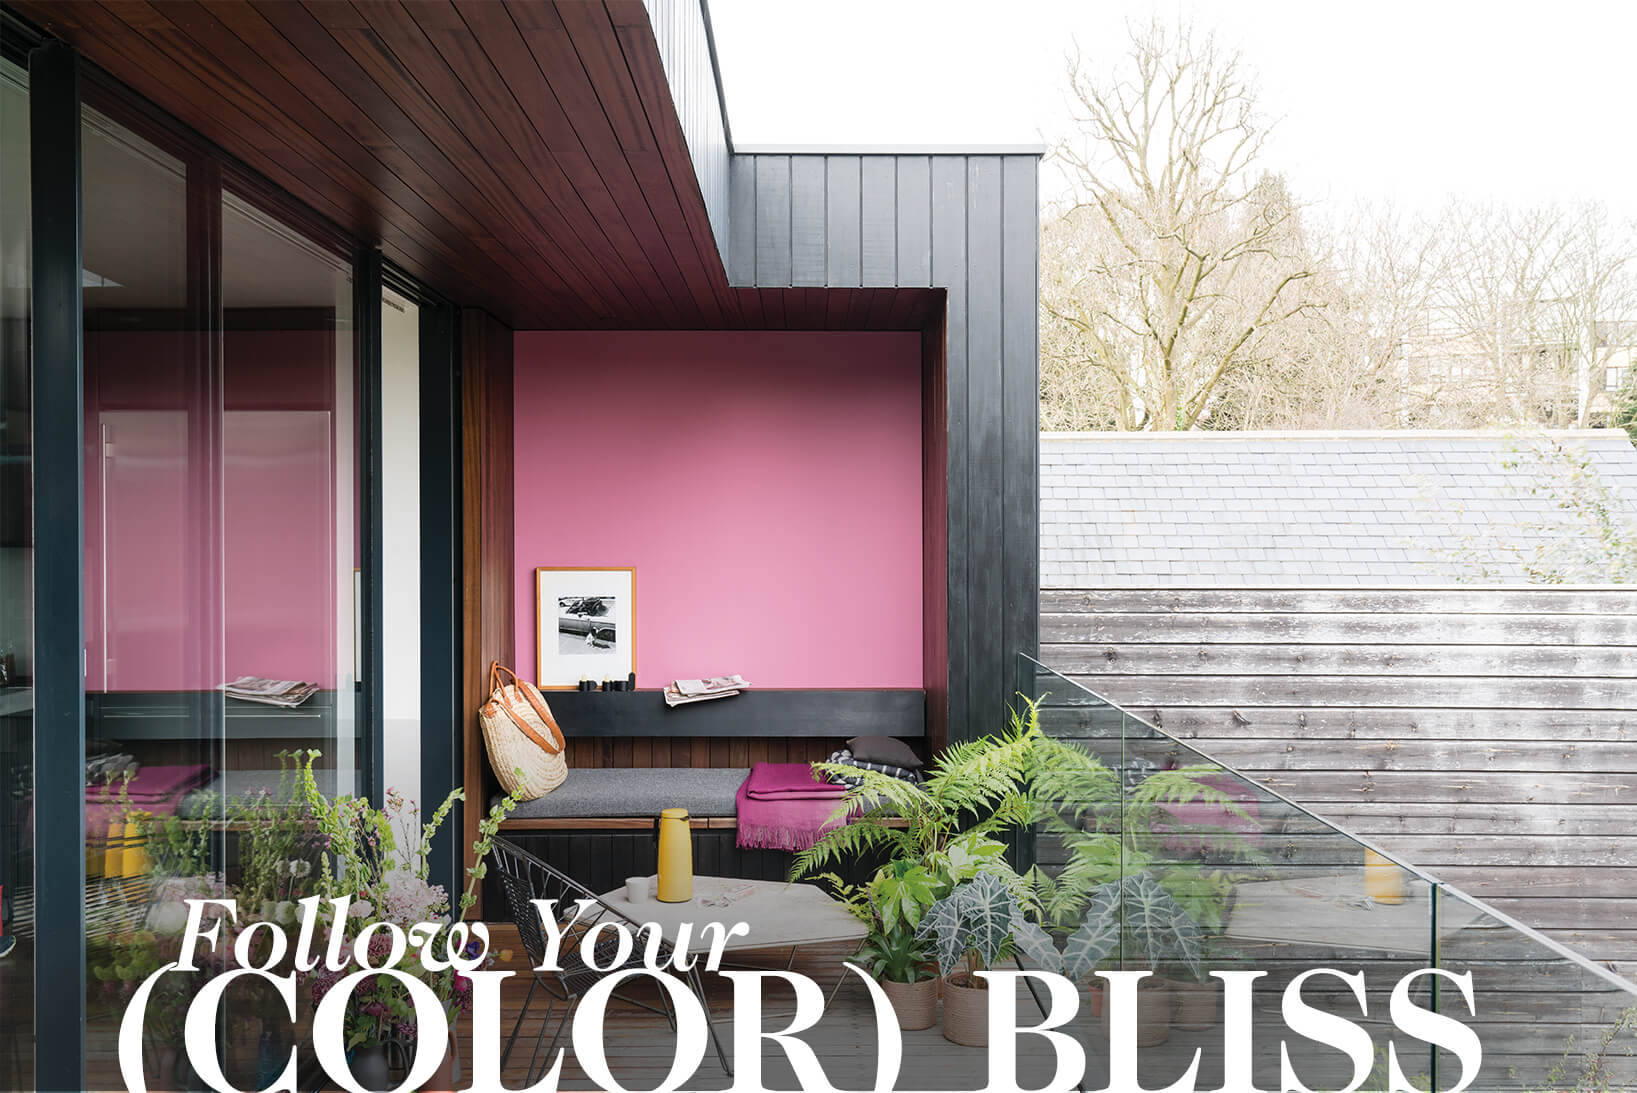 Follor Your (Color) Bliss